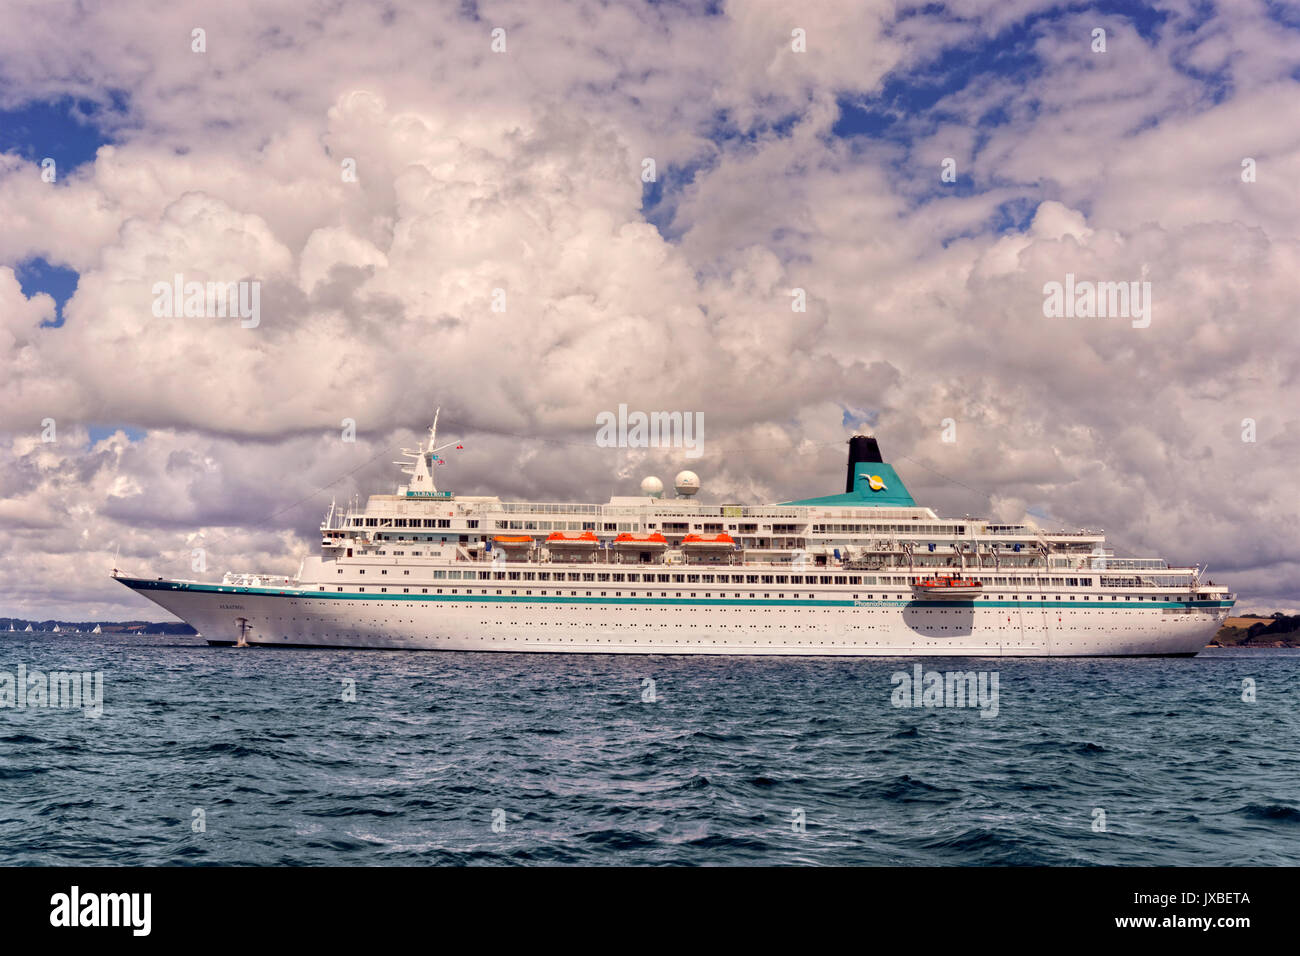 Cruise ship 'Albatros' anchored in the Carrick Roads, Falmouth, England, UK. - Stock Image